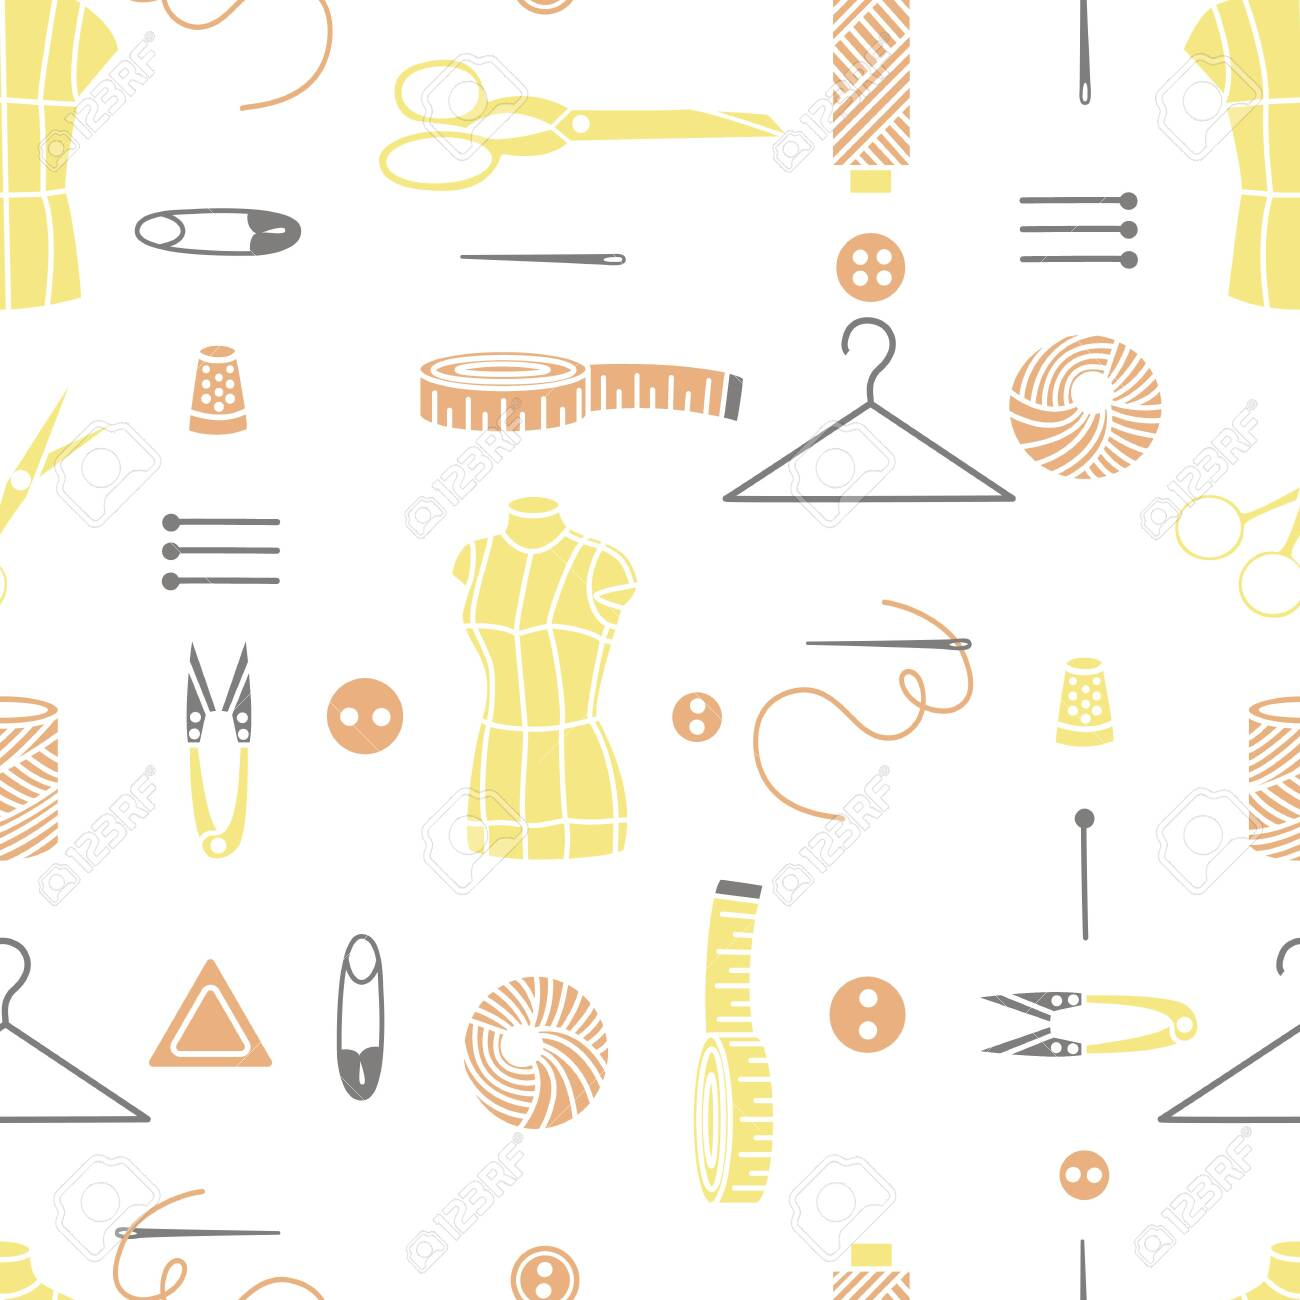 Sewing Tools Seamless Pattern Vector Background Colorful Sewing